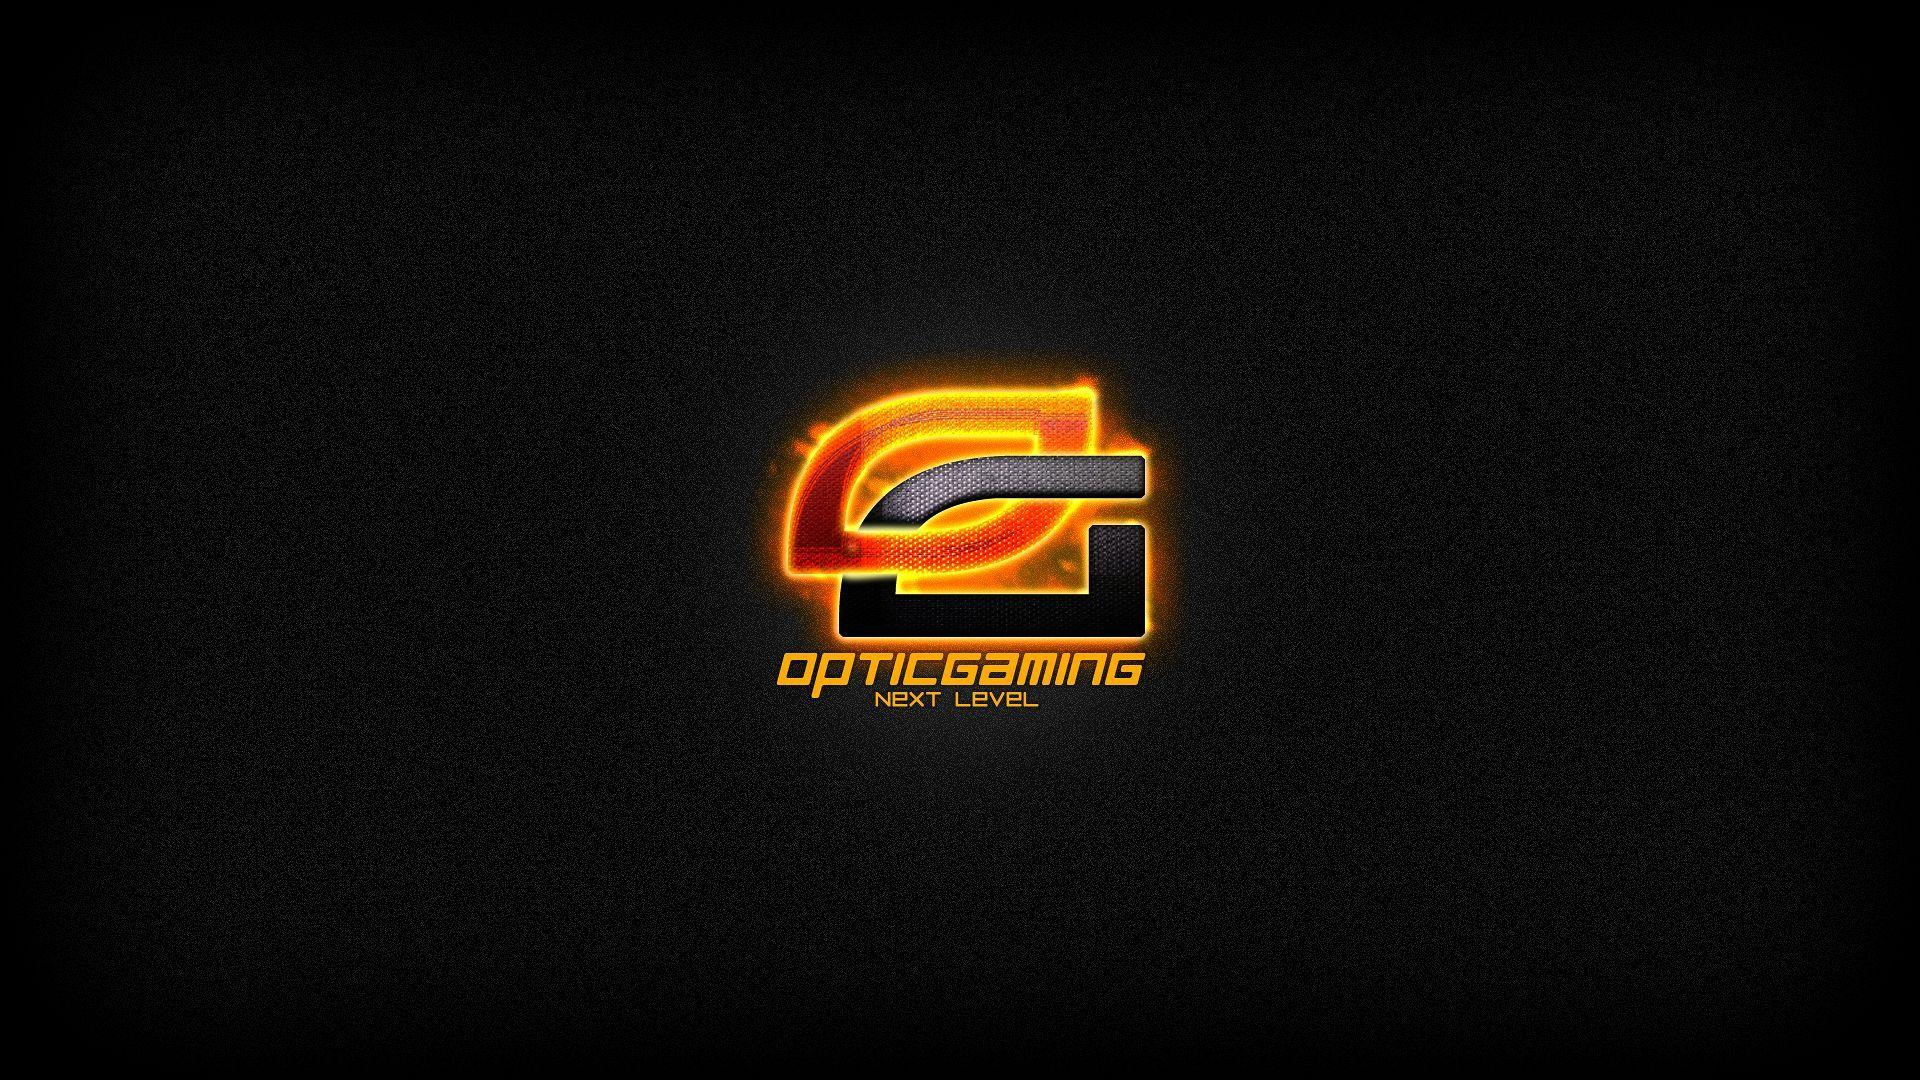 OpticGaming Next Level Wallpapers 1920x1080 by KeepItFresh on